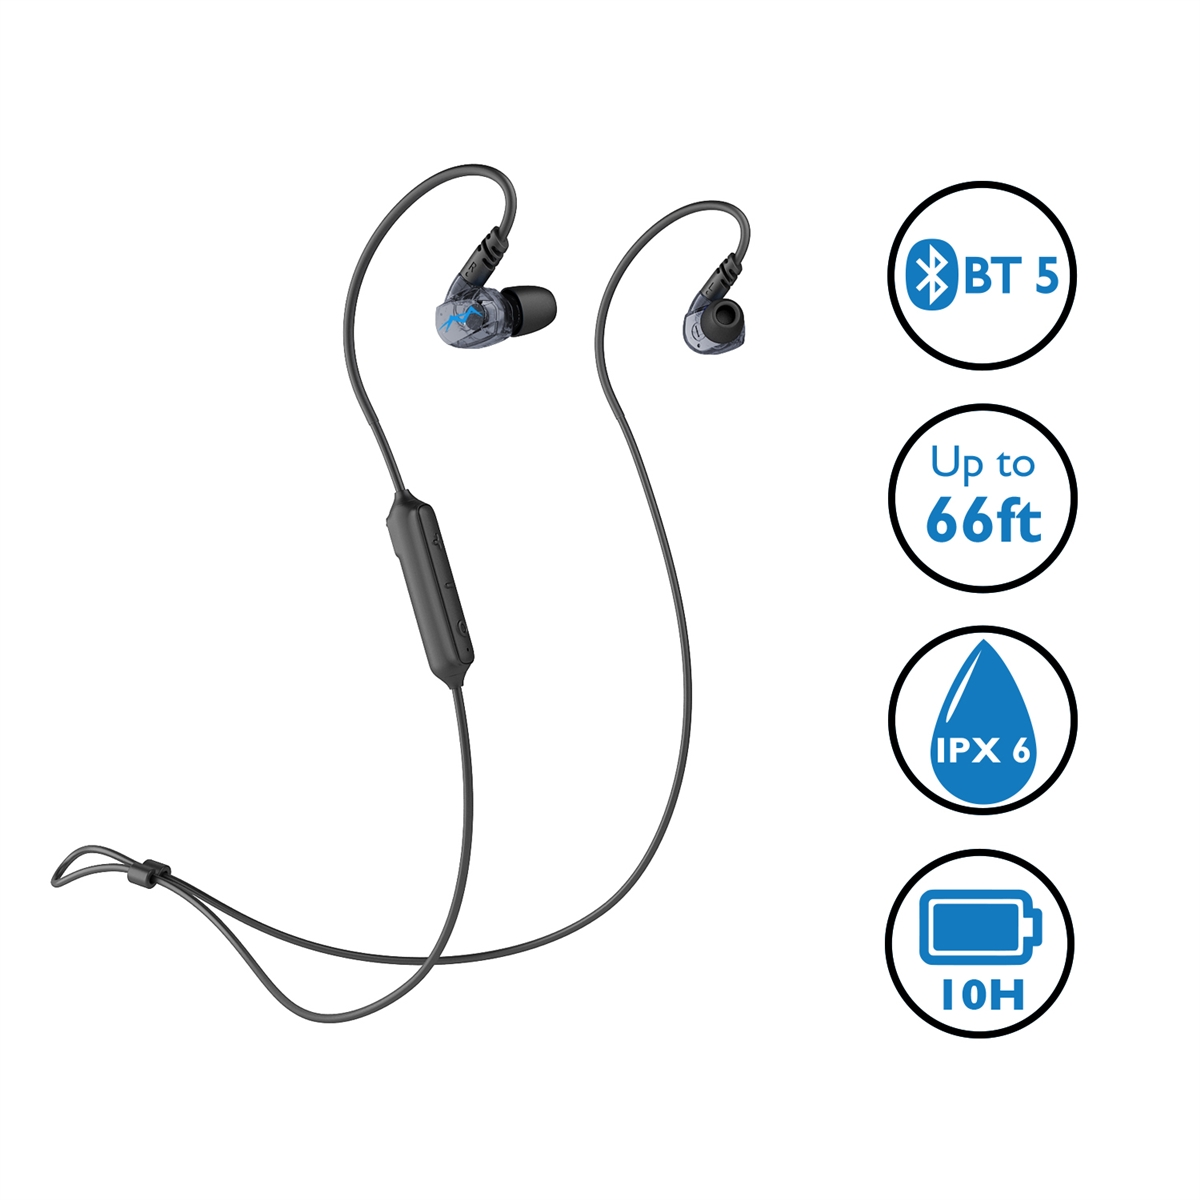 New Bluetooth 5 Sports Headphones, Sweatproof IPX6 Wireless Headset, High Fidelity Deep Bass, Comfortable Secure in Ear Fit with Mic, 10H Long Battery Life (Miccus Steath Mini)